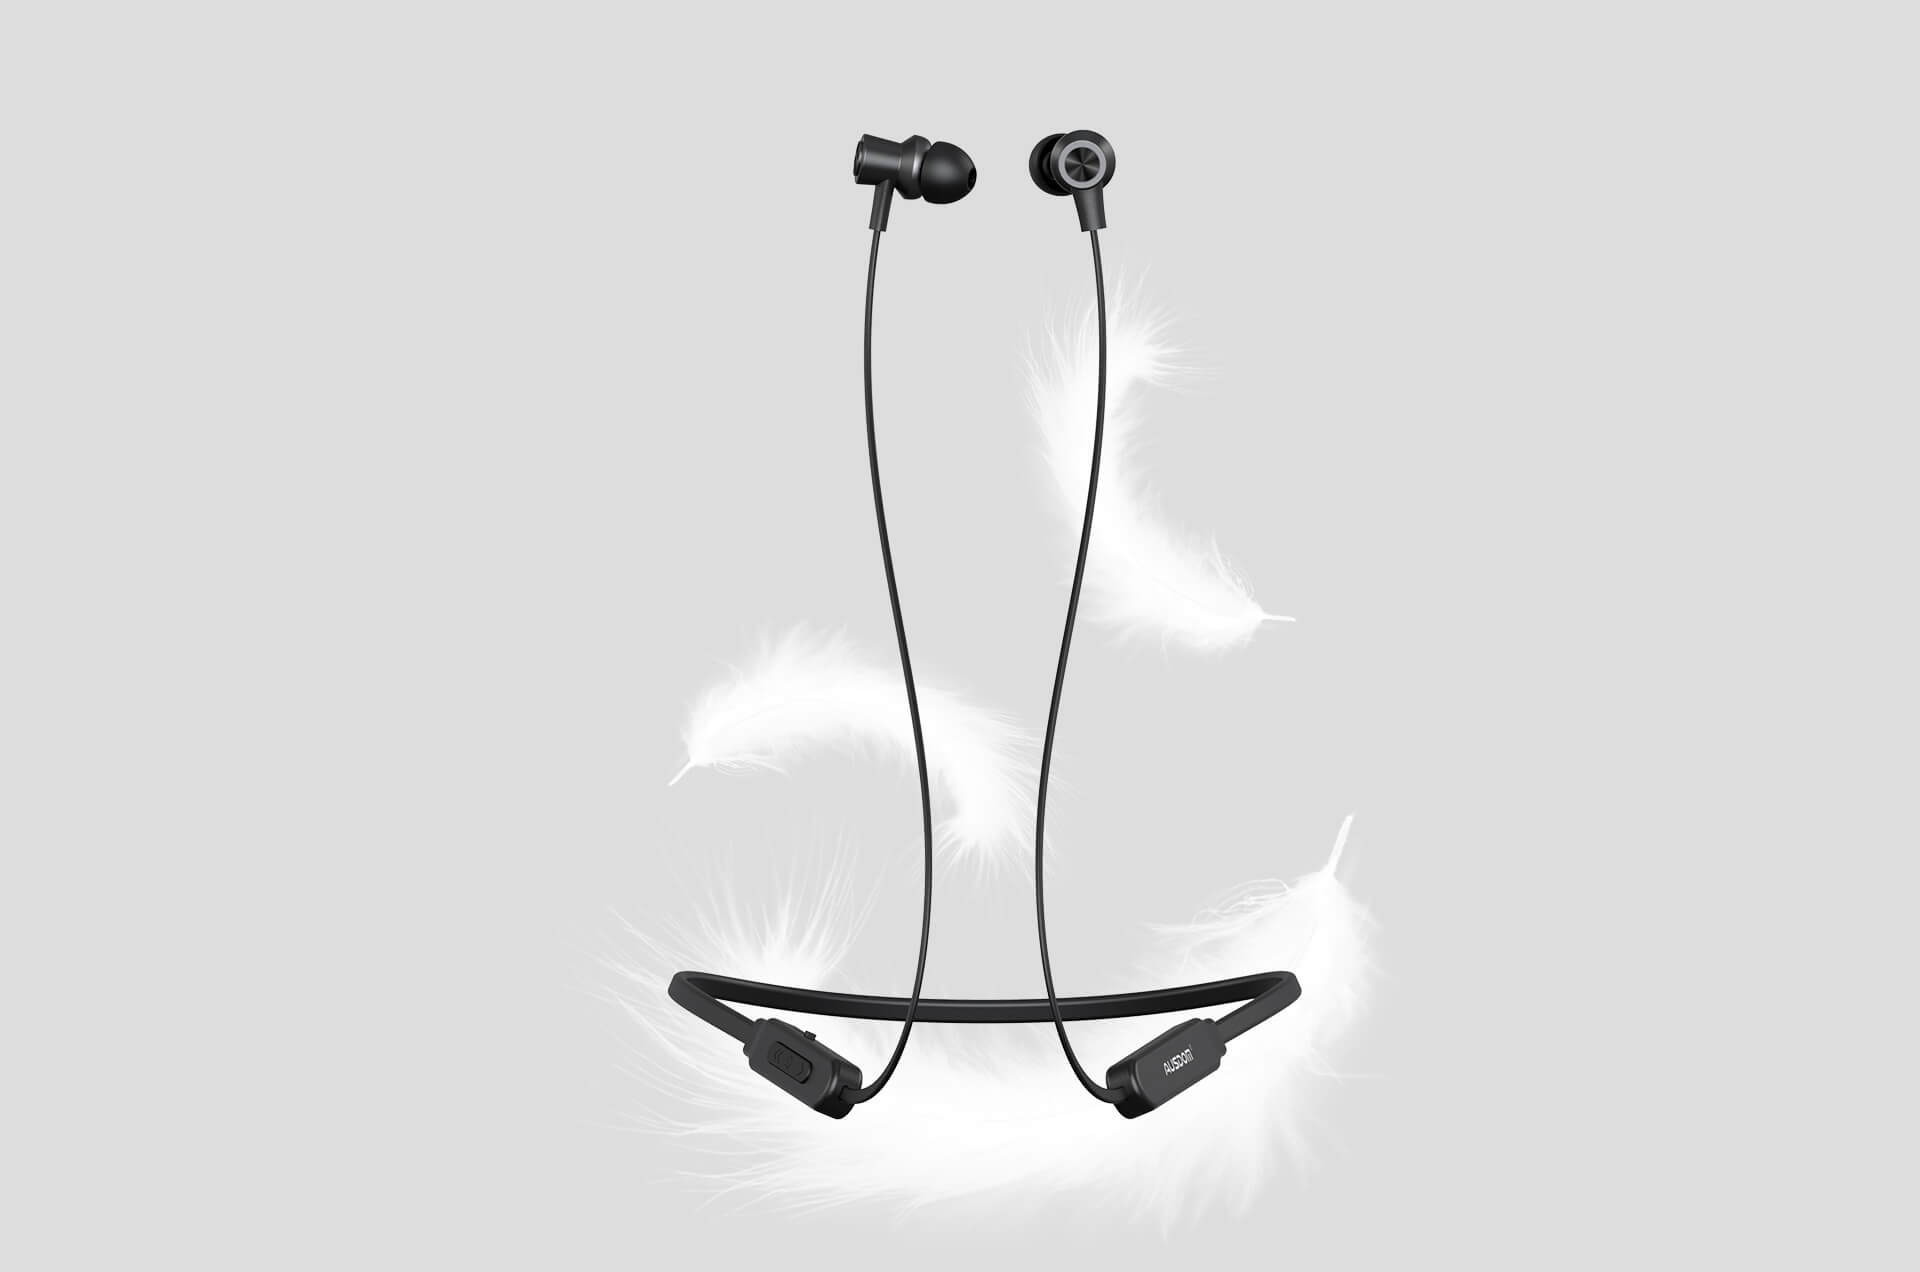 Ausdom S5 Sweatproof Wireless Sports Neckband Bluetooth Earphones